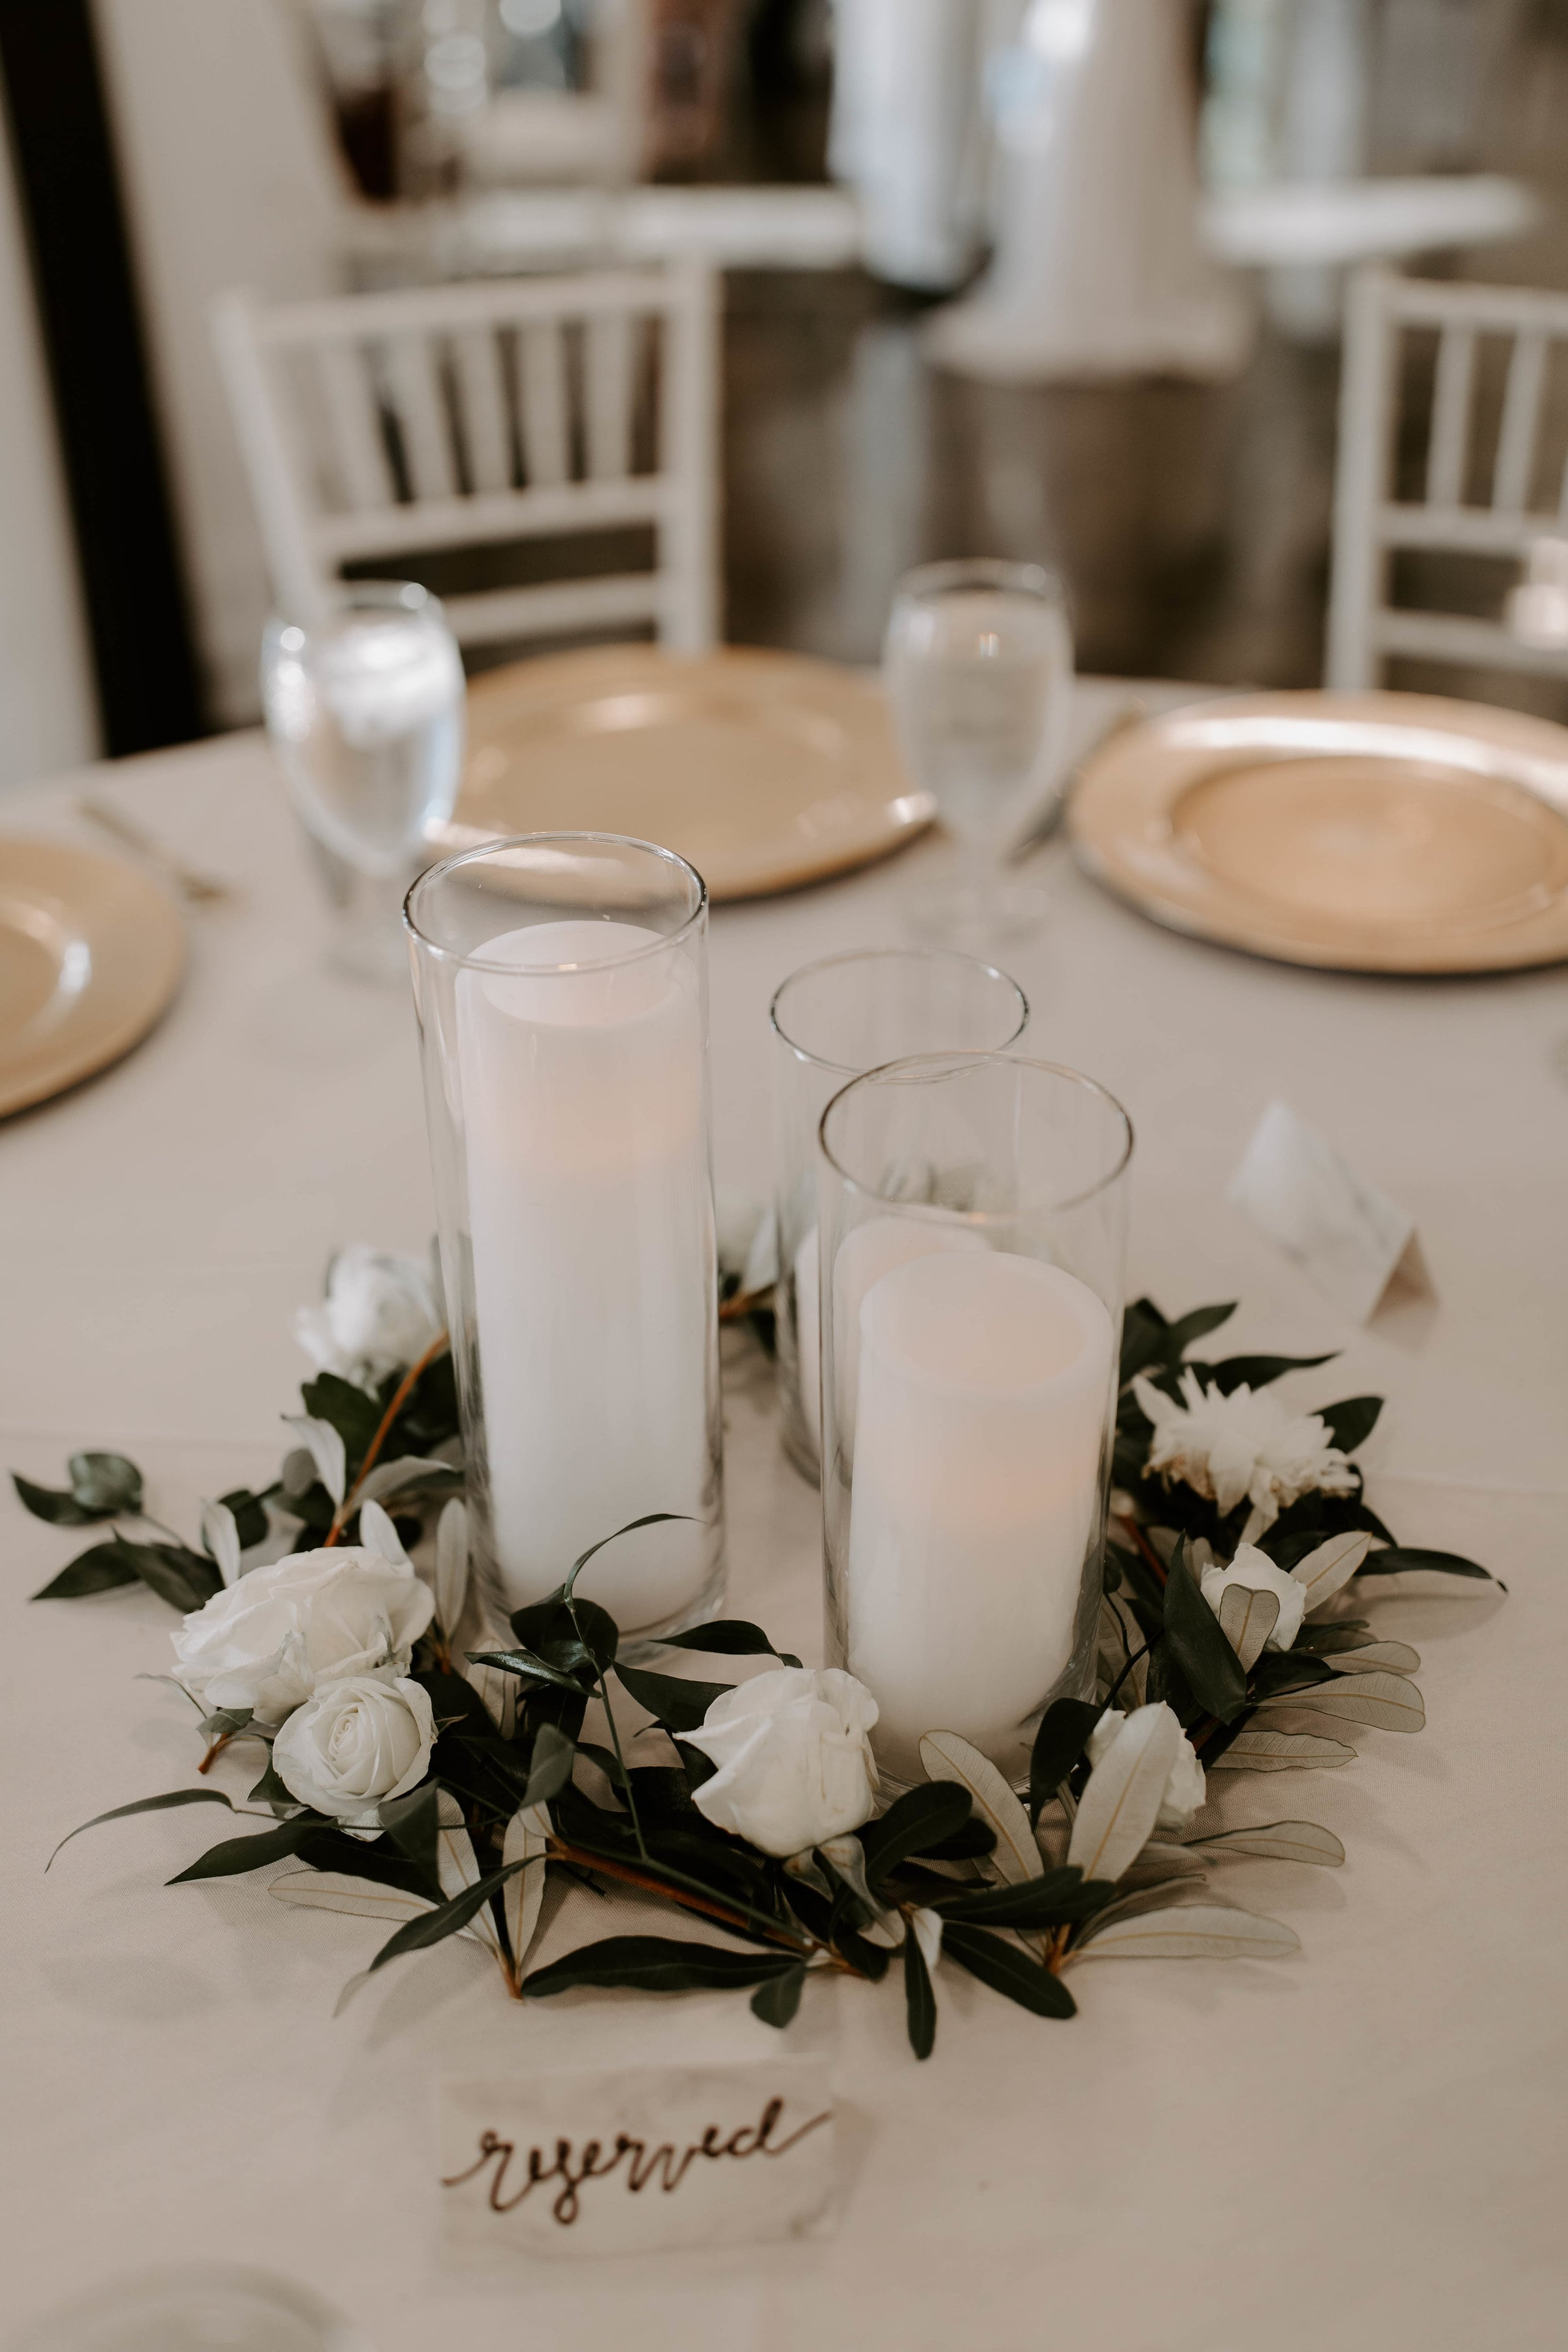 tulsa wedding venue table decor-min.jpg